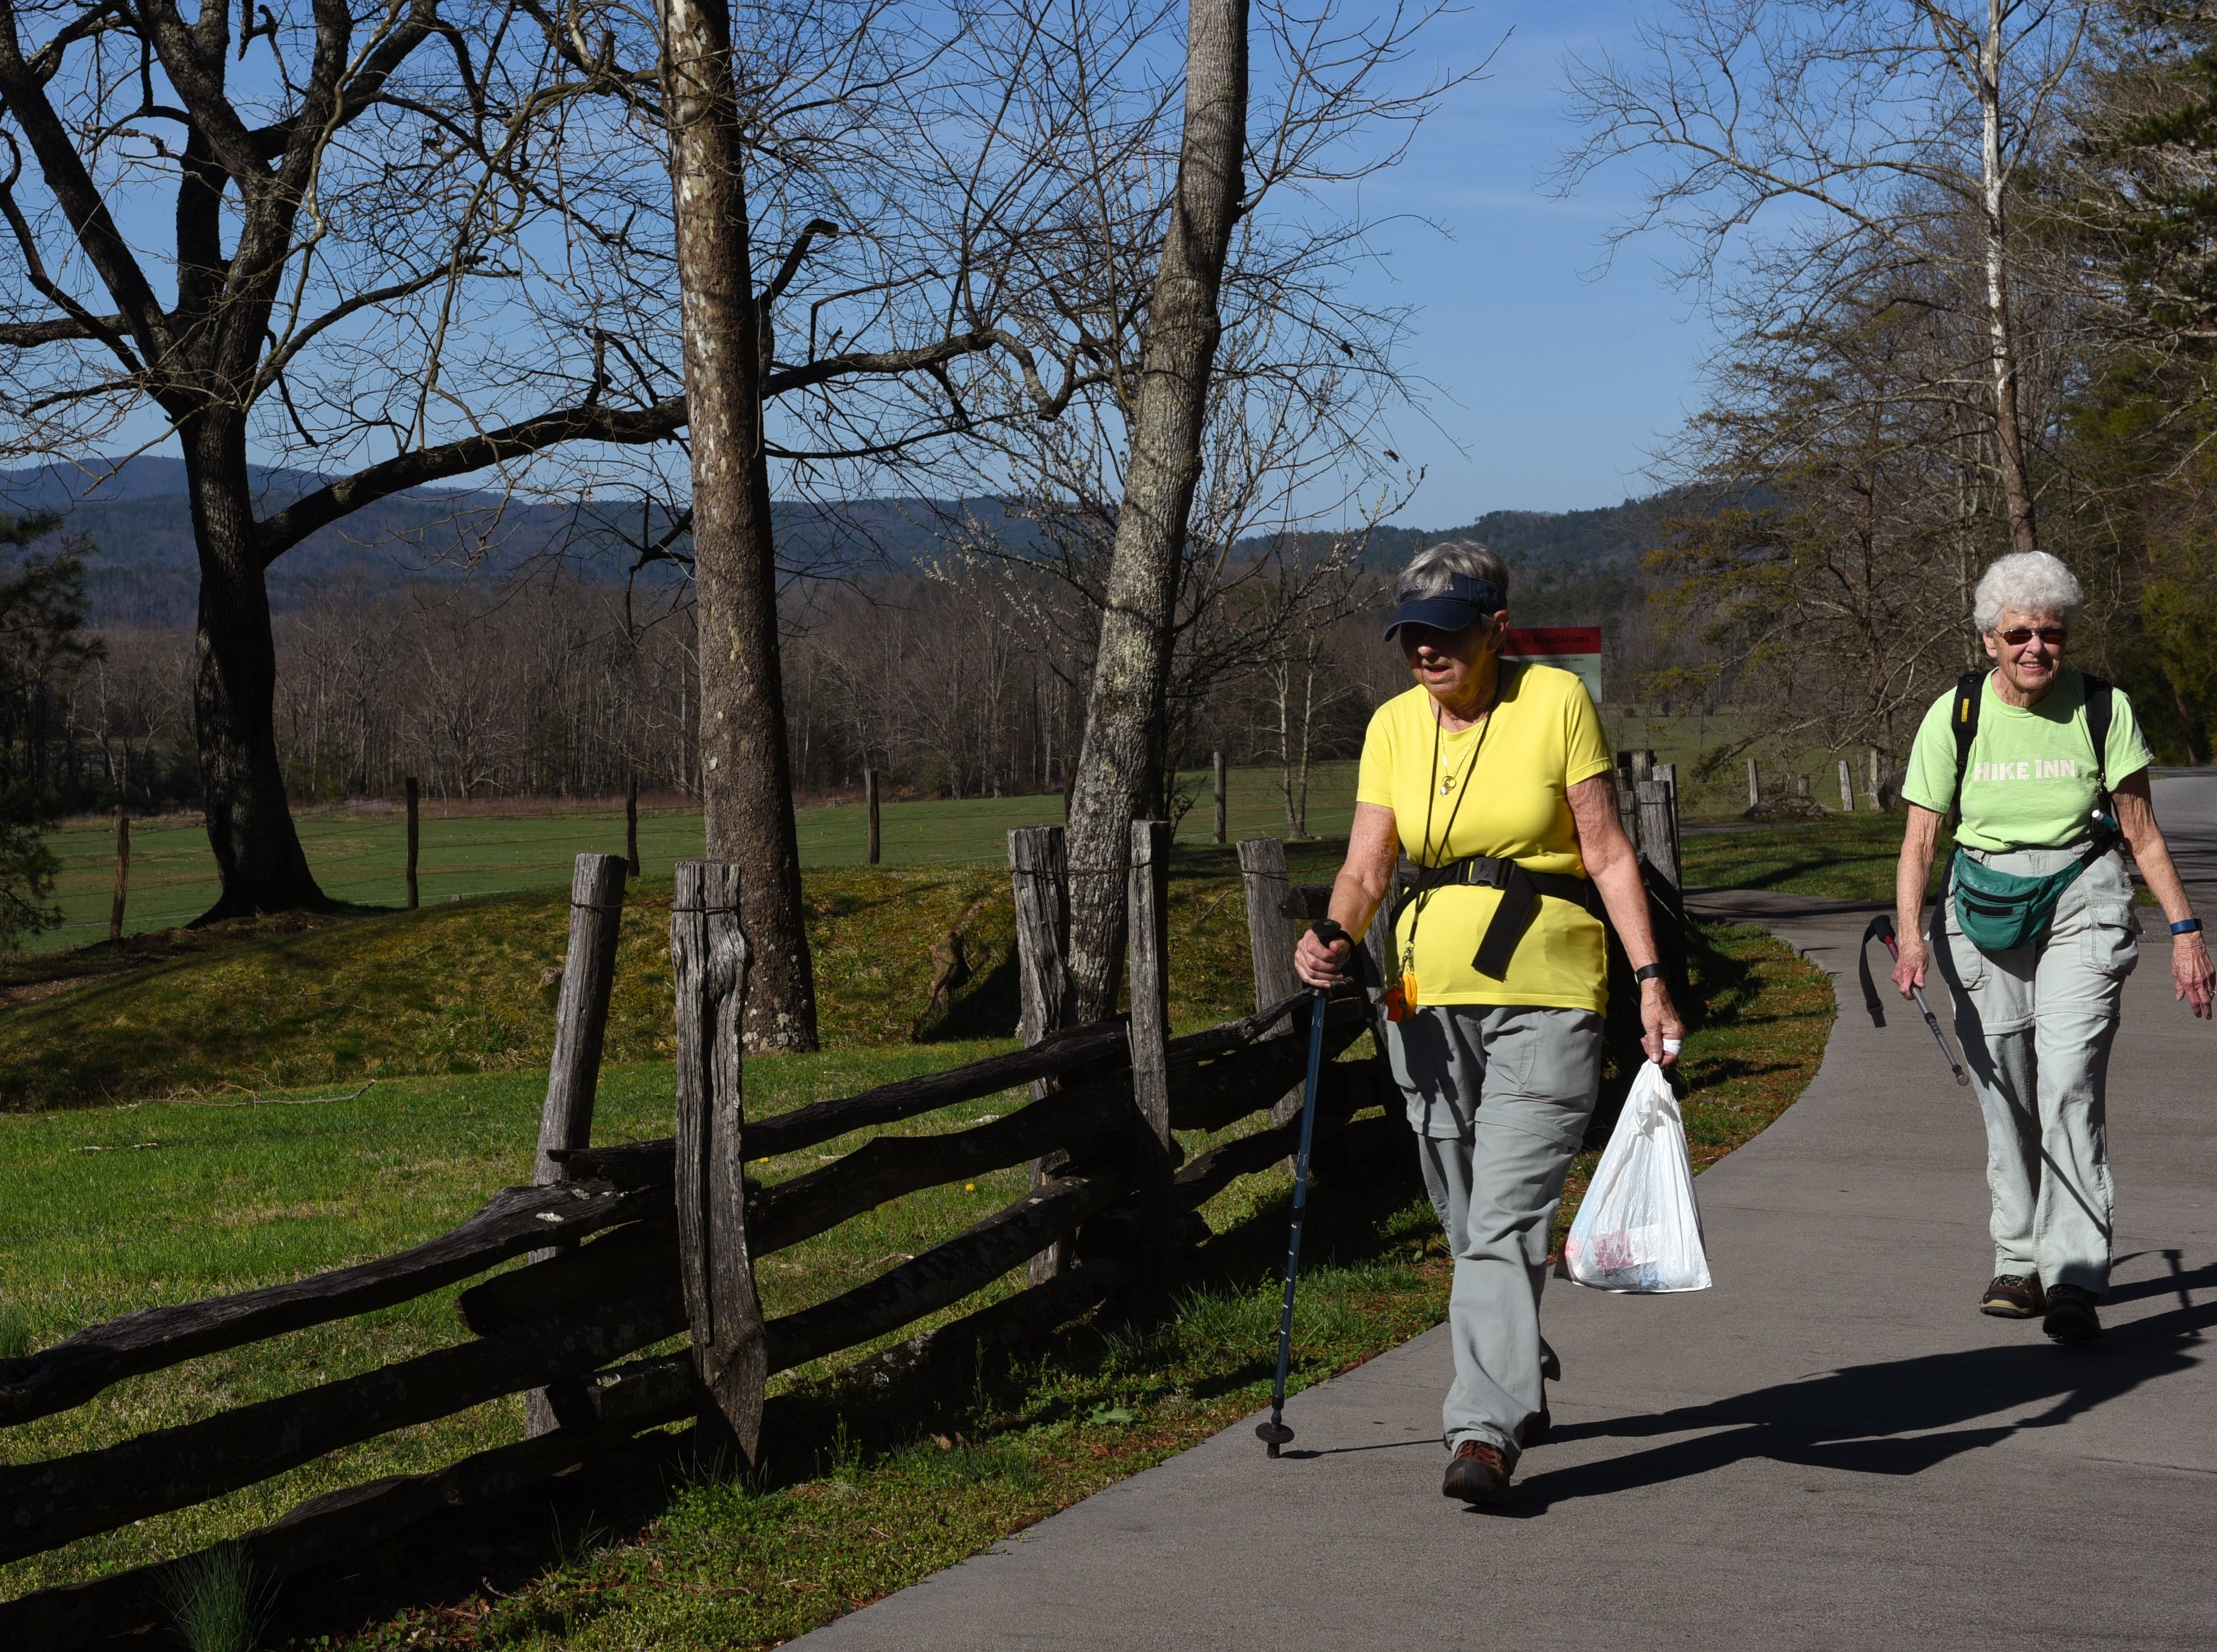 """Lois Costanza and Barbara Adams, right, finish their hike of the short loop in Cades Cove Tuesday, Mar. 15, 2016. Costanza is from Maryville and Adams is from New York. Adams added, """"It must be spring break cause I've never seen so many cars in here.""""  (MICHAEL PATRICK/NEWS SENTINEL)"""